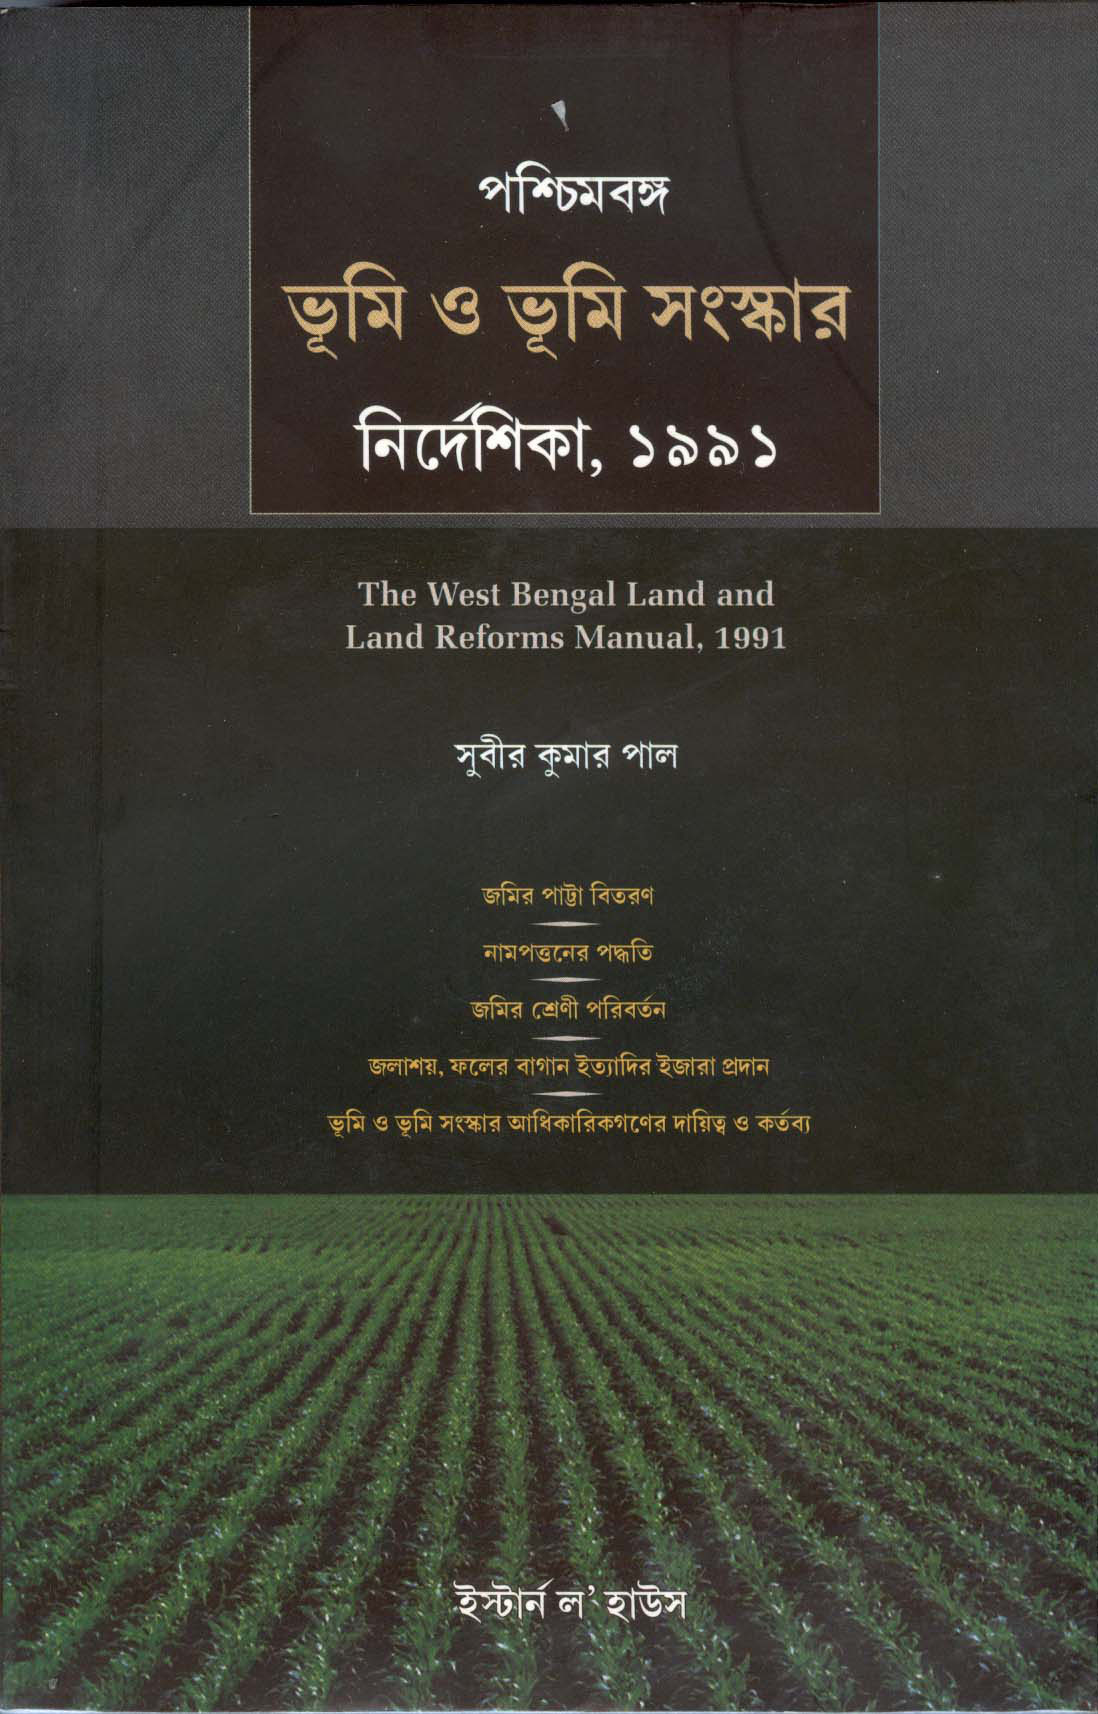 The West Bengal Land & Land Reforms Manual, 1991 (In Bengali)